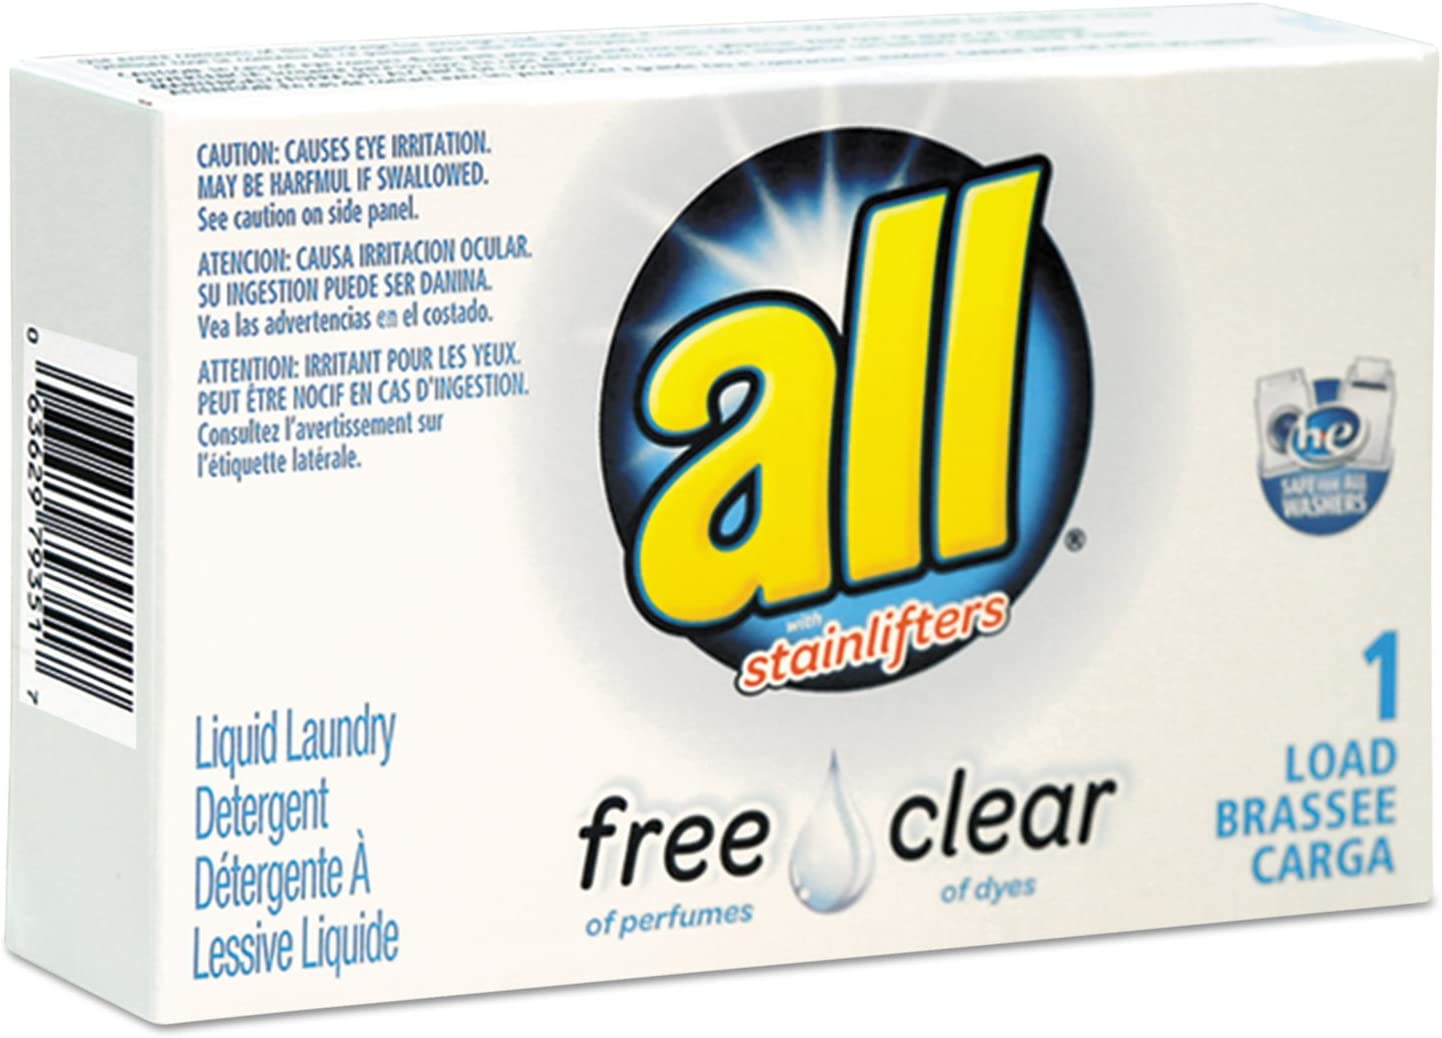 All Free Clear HE Liquid Laundry Detergent, Unscented, 1. 6 oz Vend-Box, 100/Carton